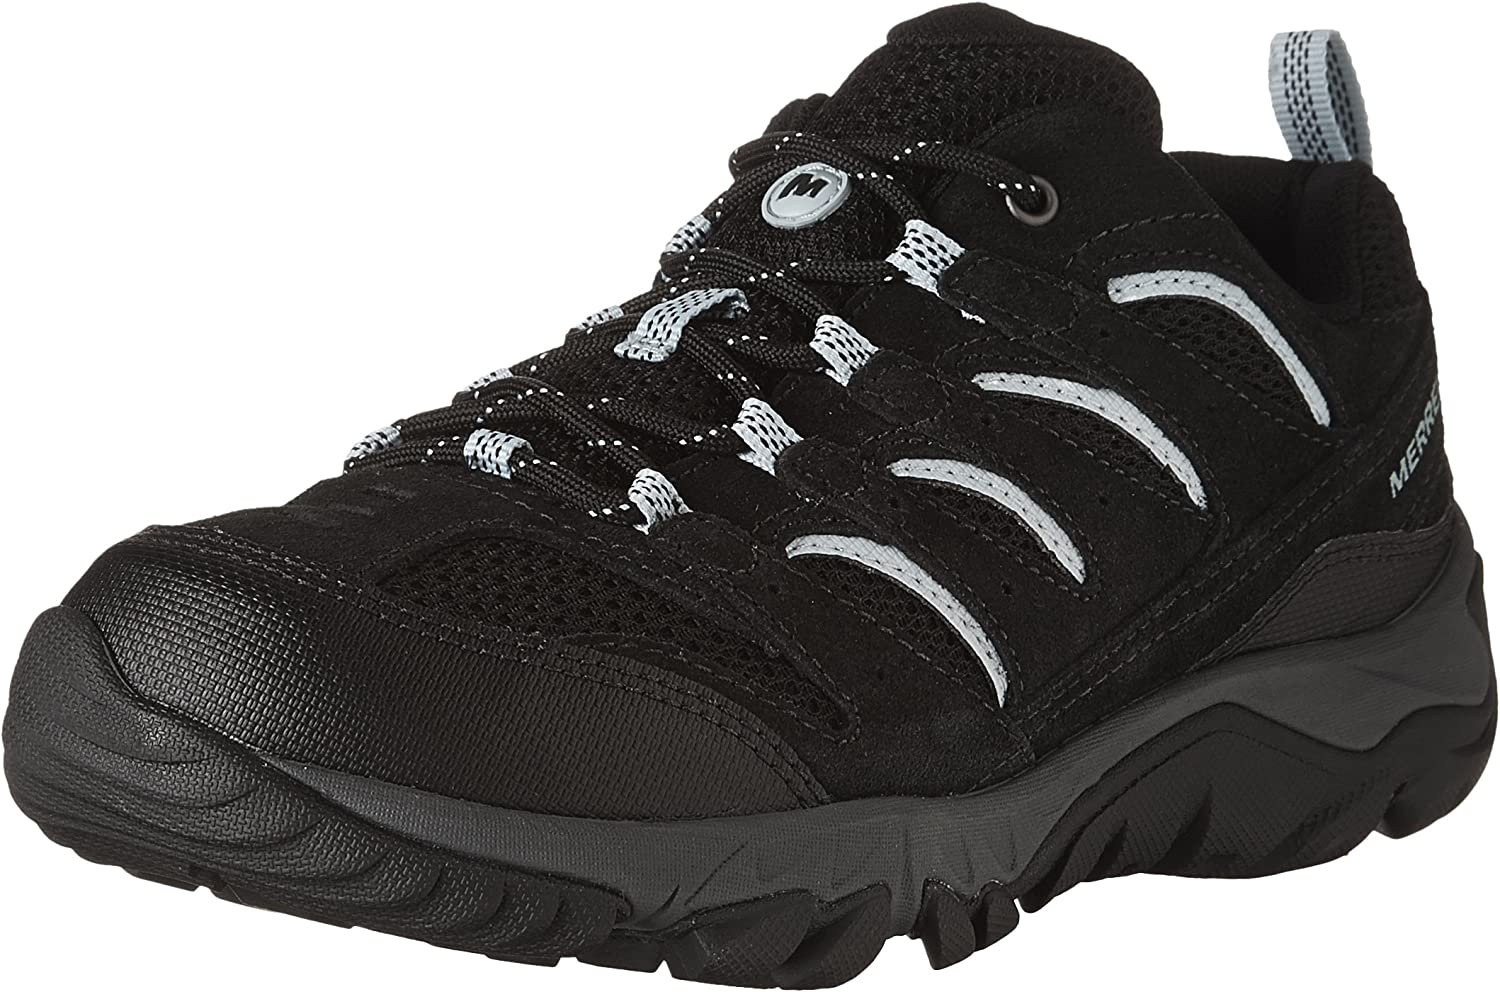 Merrell Women's White Pine Vent Hiking shoes